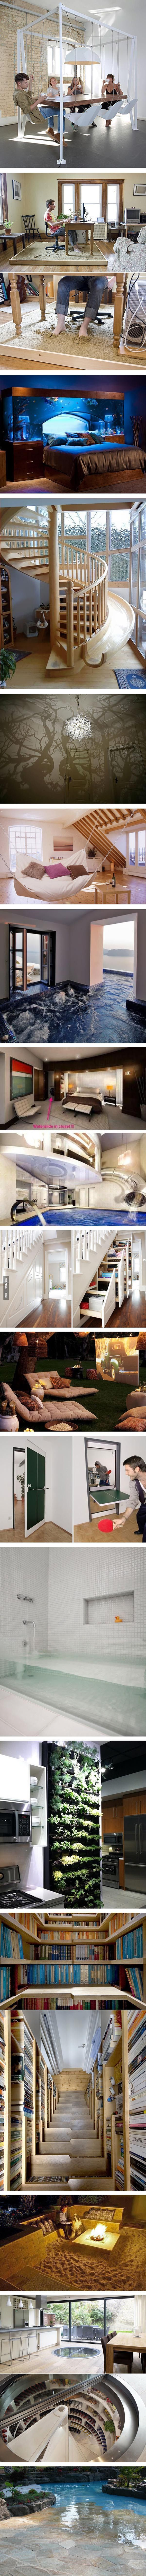 18 Awesome House Ideas! Scale con cassetti/ scale con posto per i libri